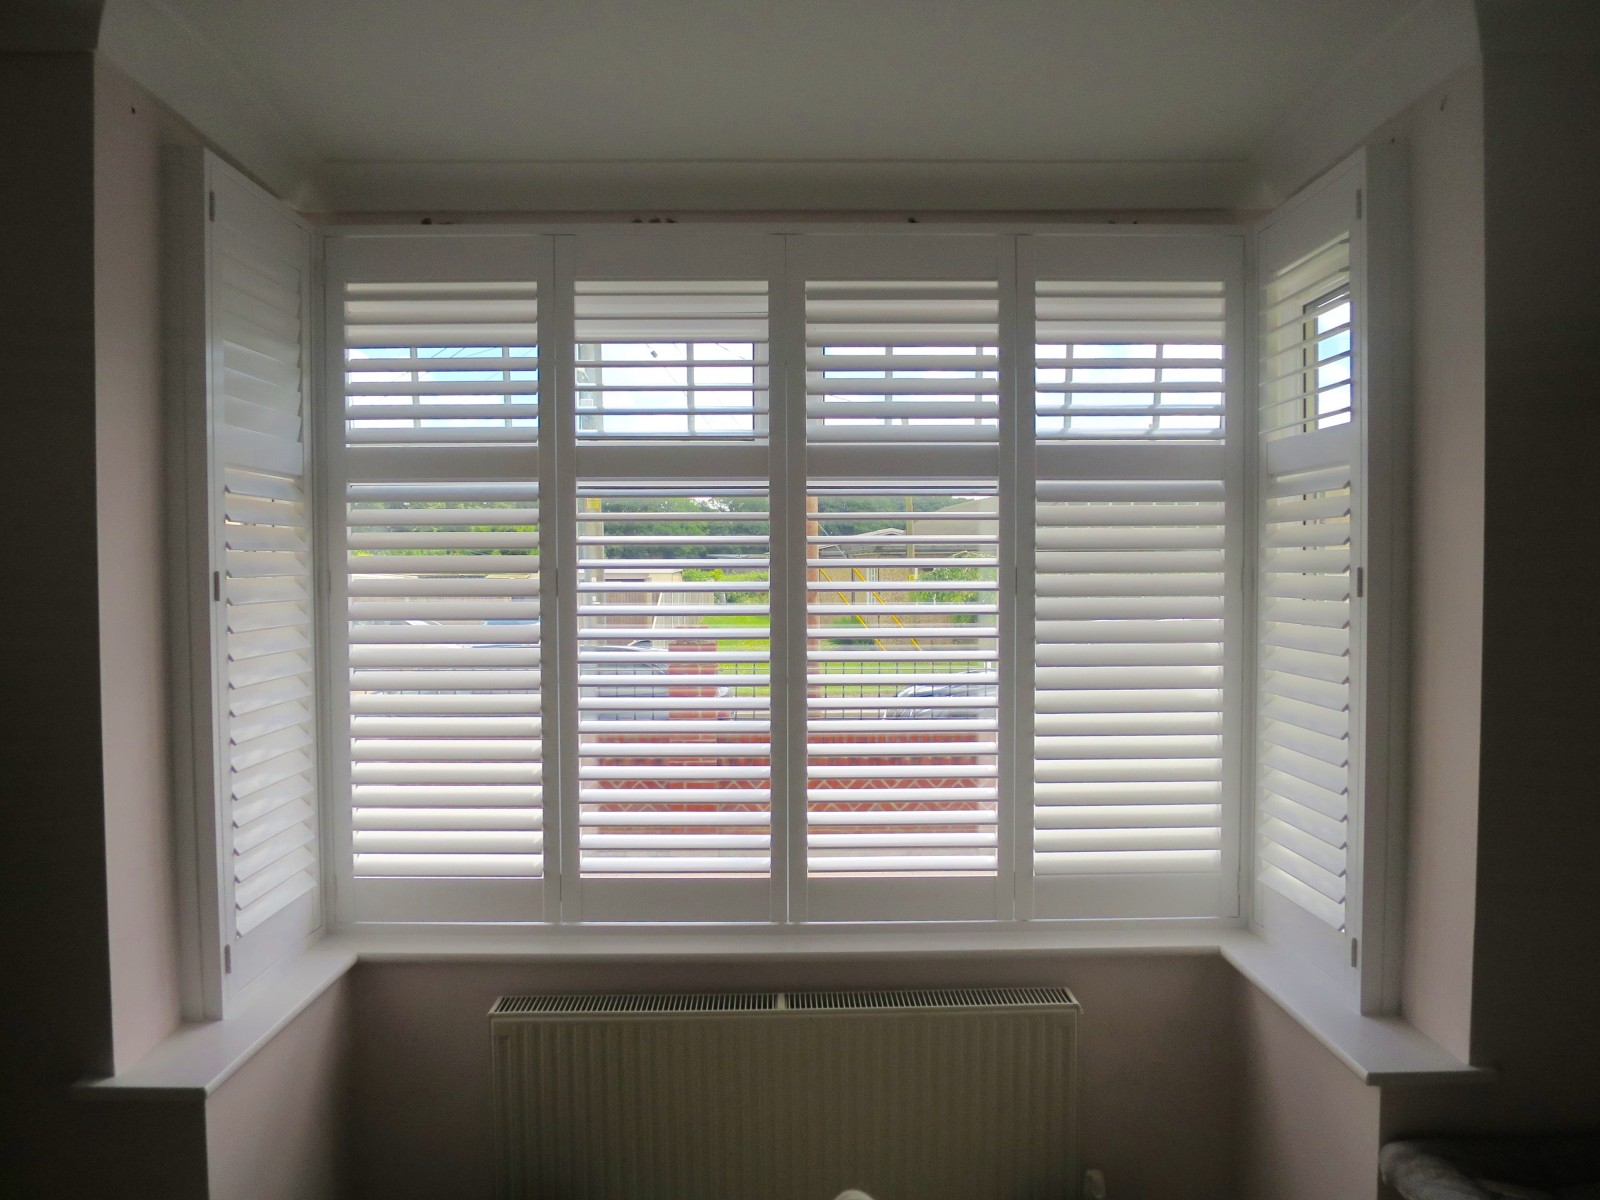 Bungalow Bay Window Shutters Shuttersouth